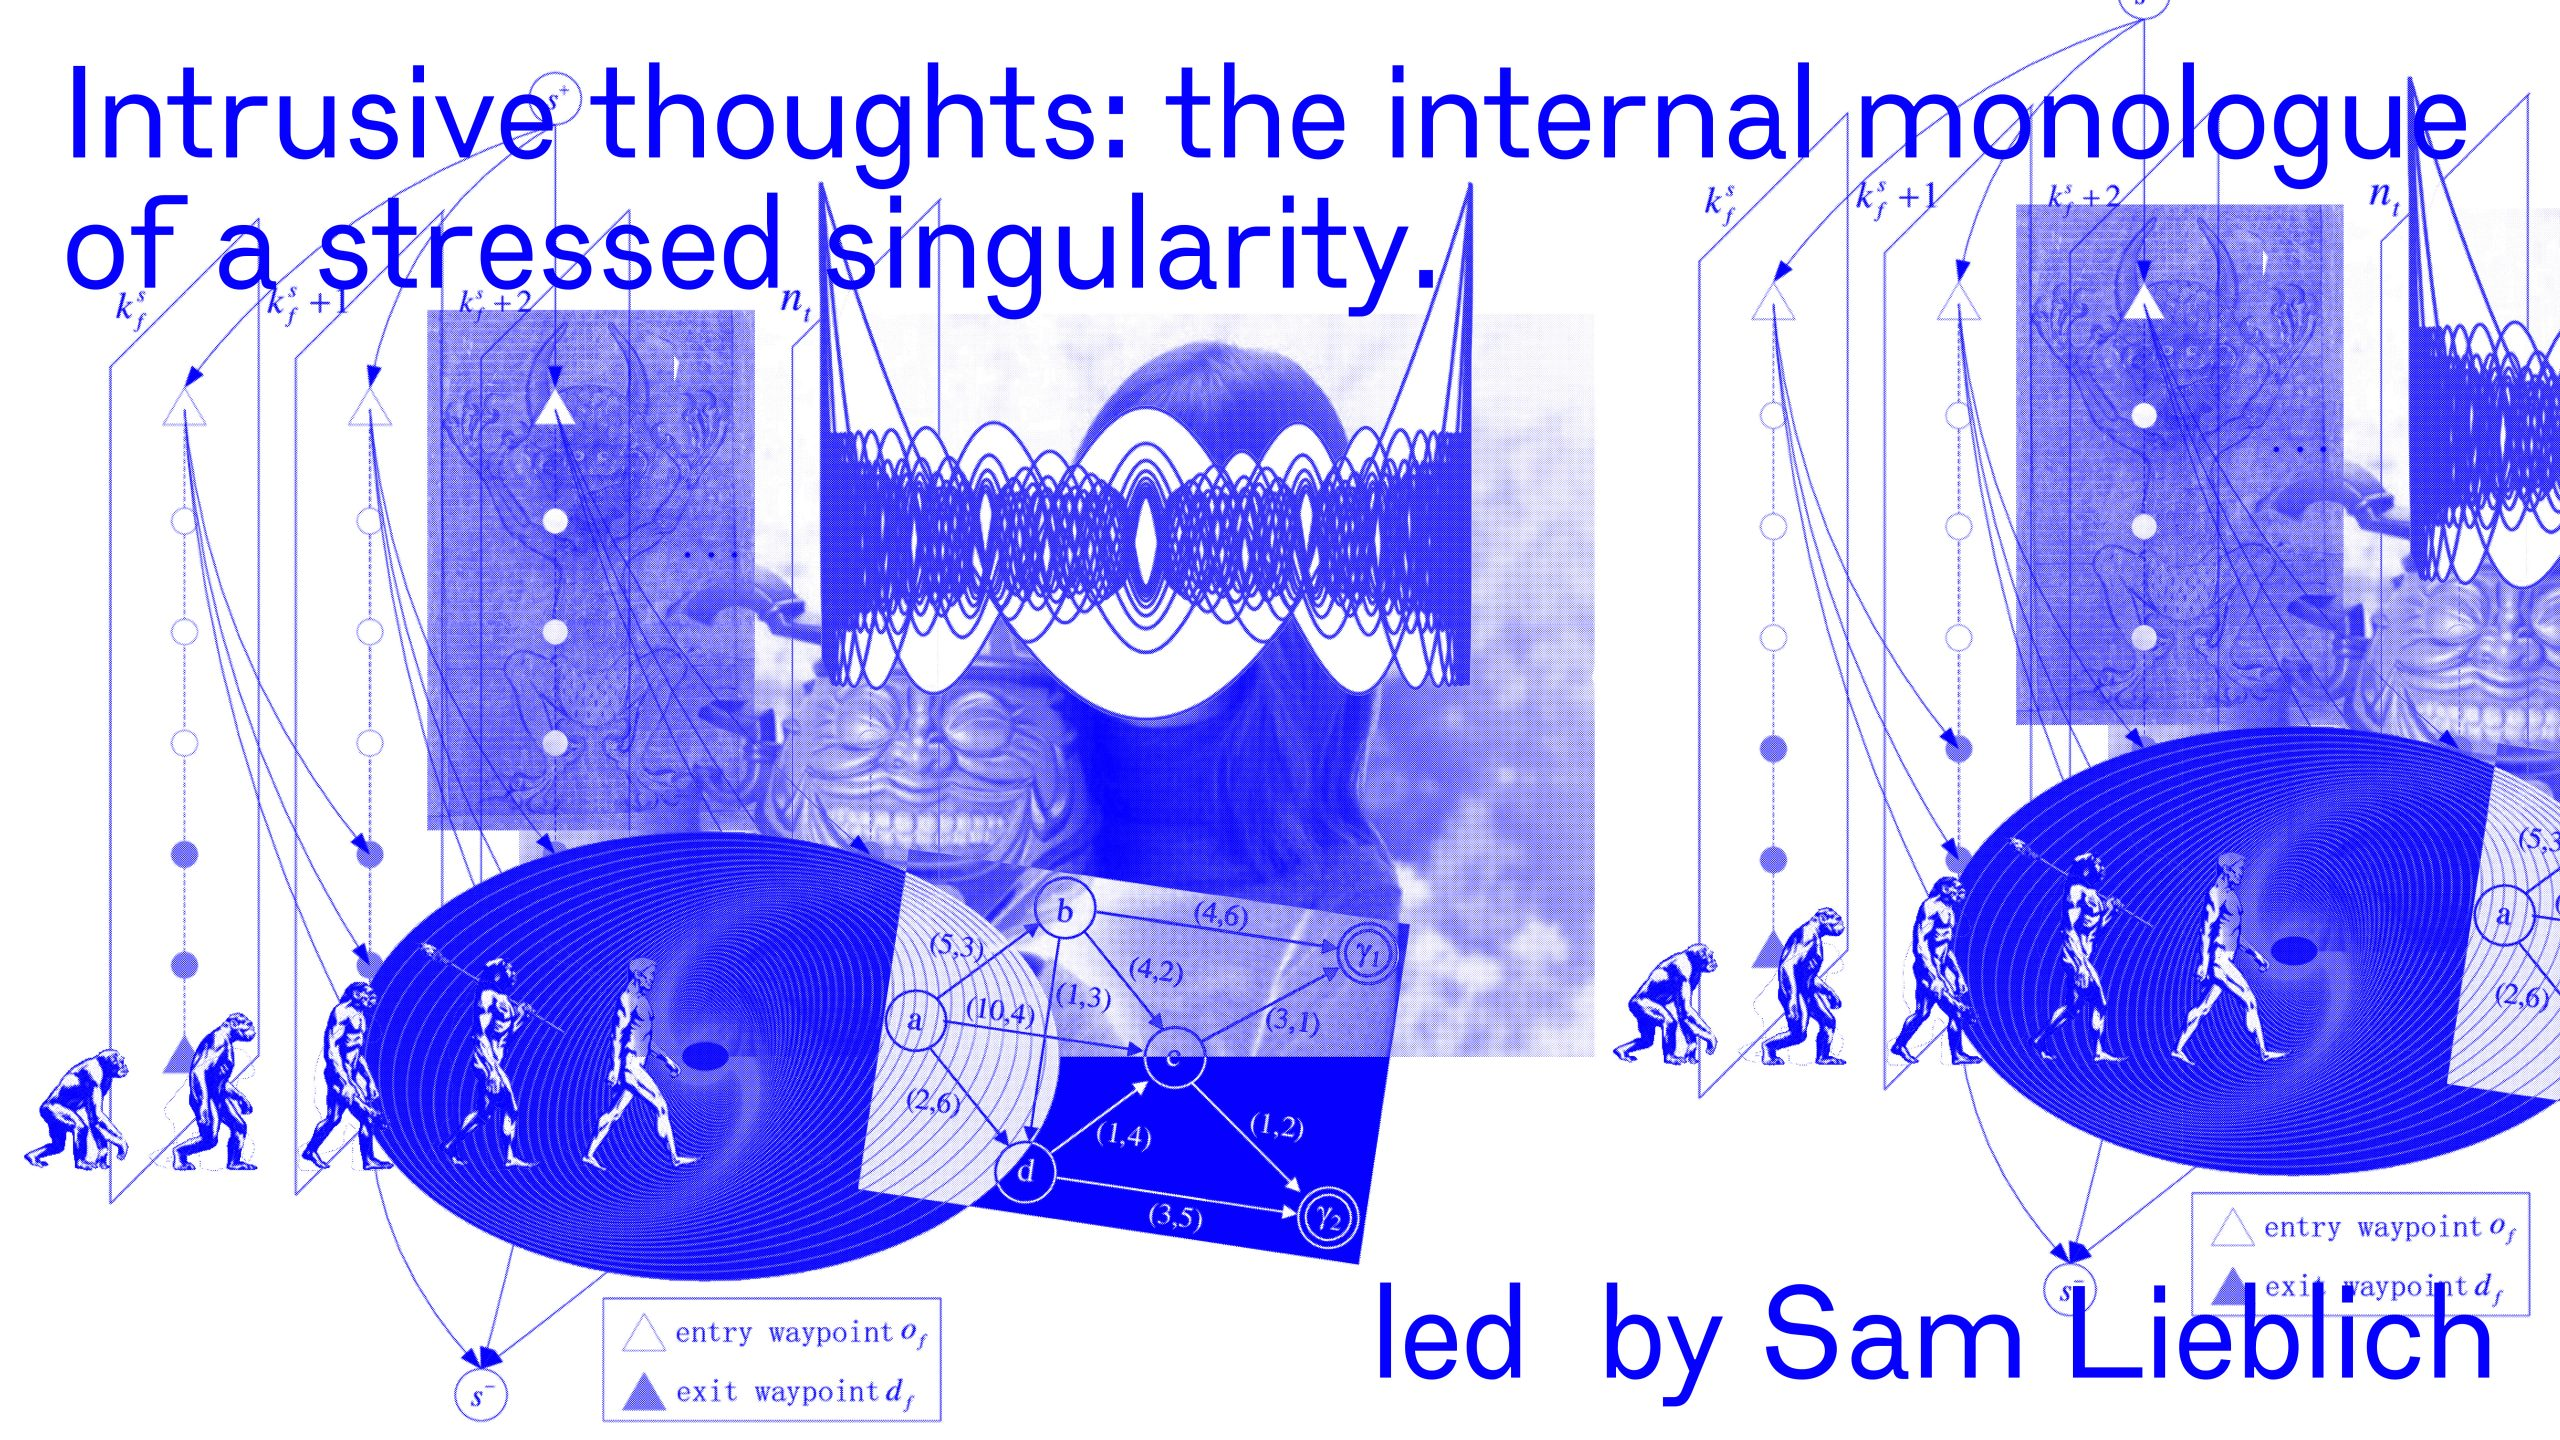 Intrusive thoughts: the internal monologue of a stressed singularity led by Sam Leiblich